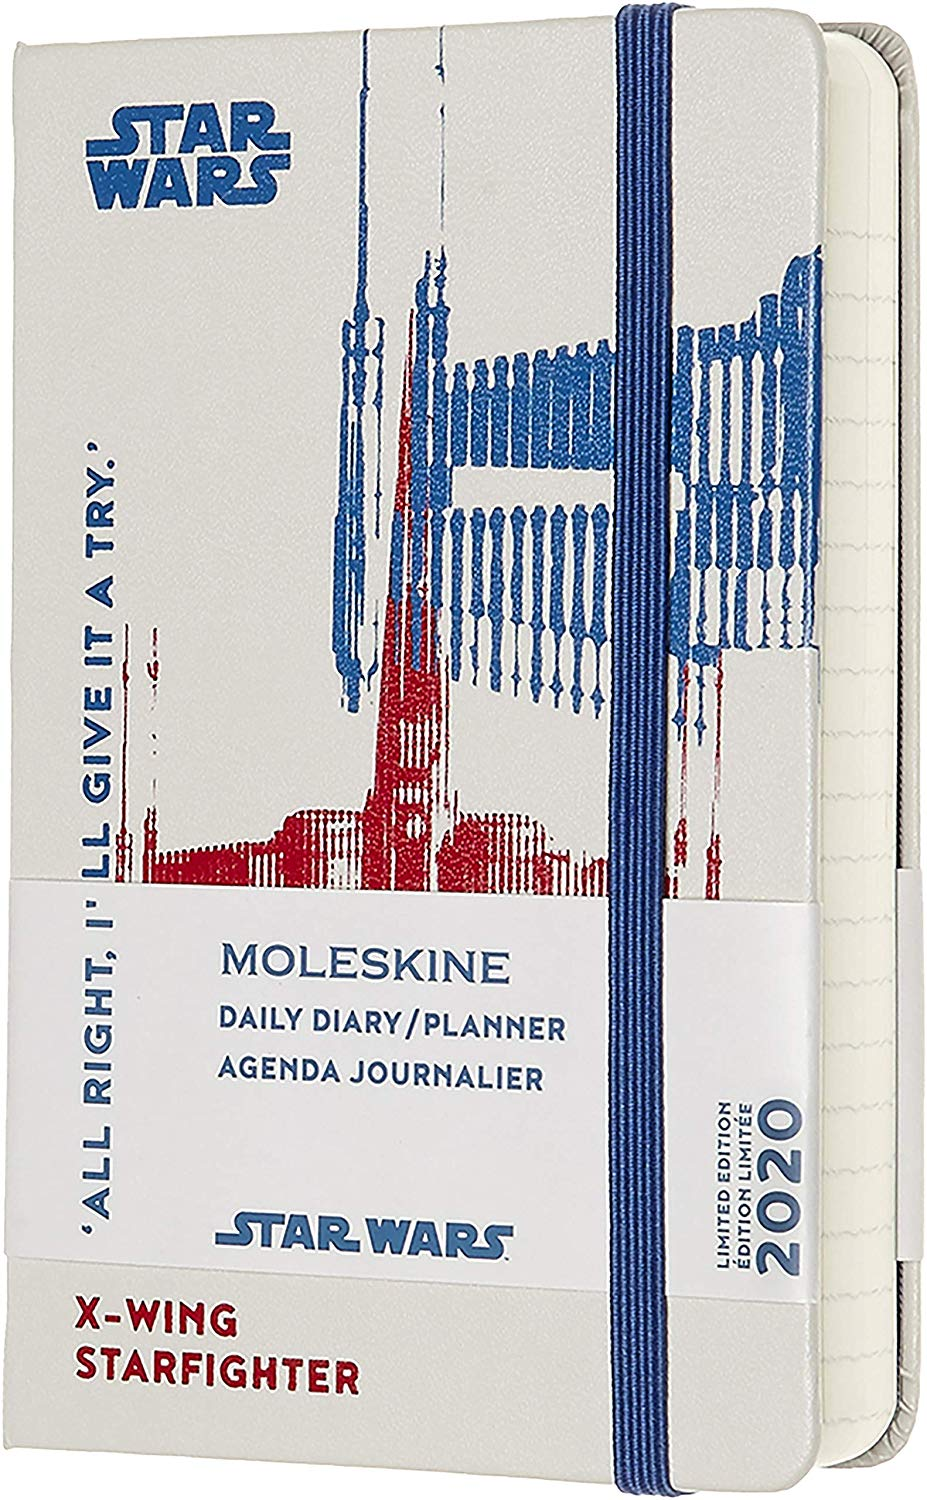 Agenda 2020 - Moleskine Limited Edition Star Wars 12-Month Daily Notebook Planner - X-Wing, Pocket, Hard cover thumbnail